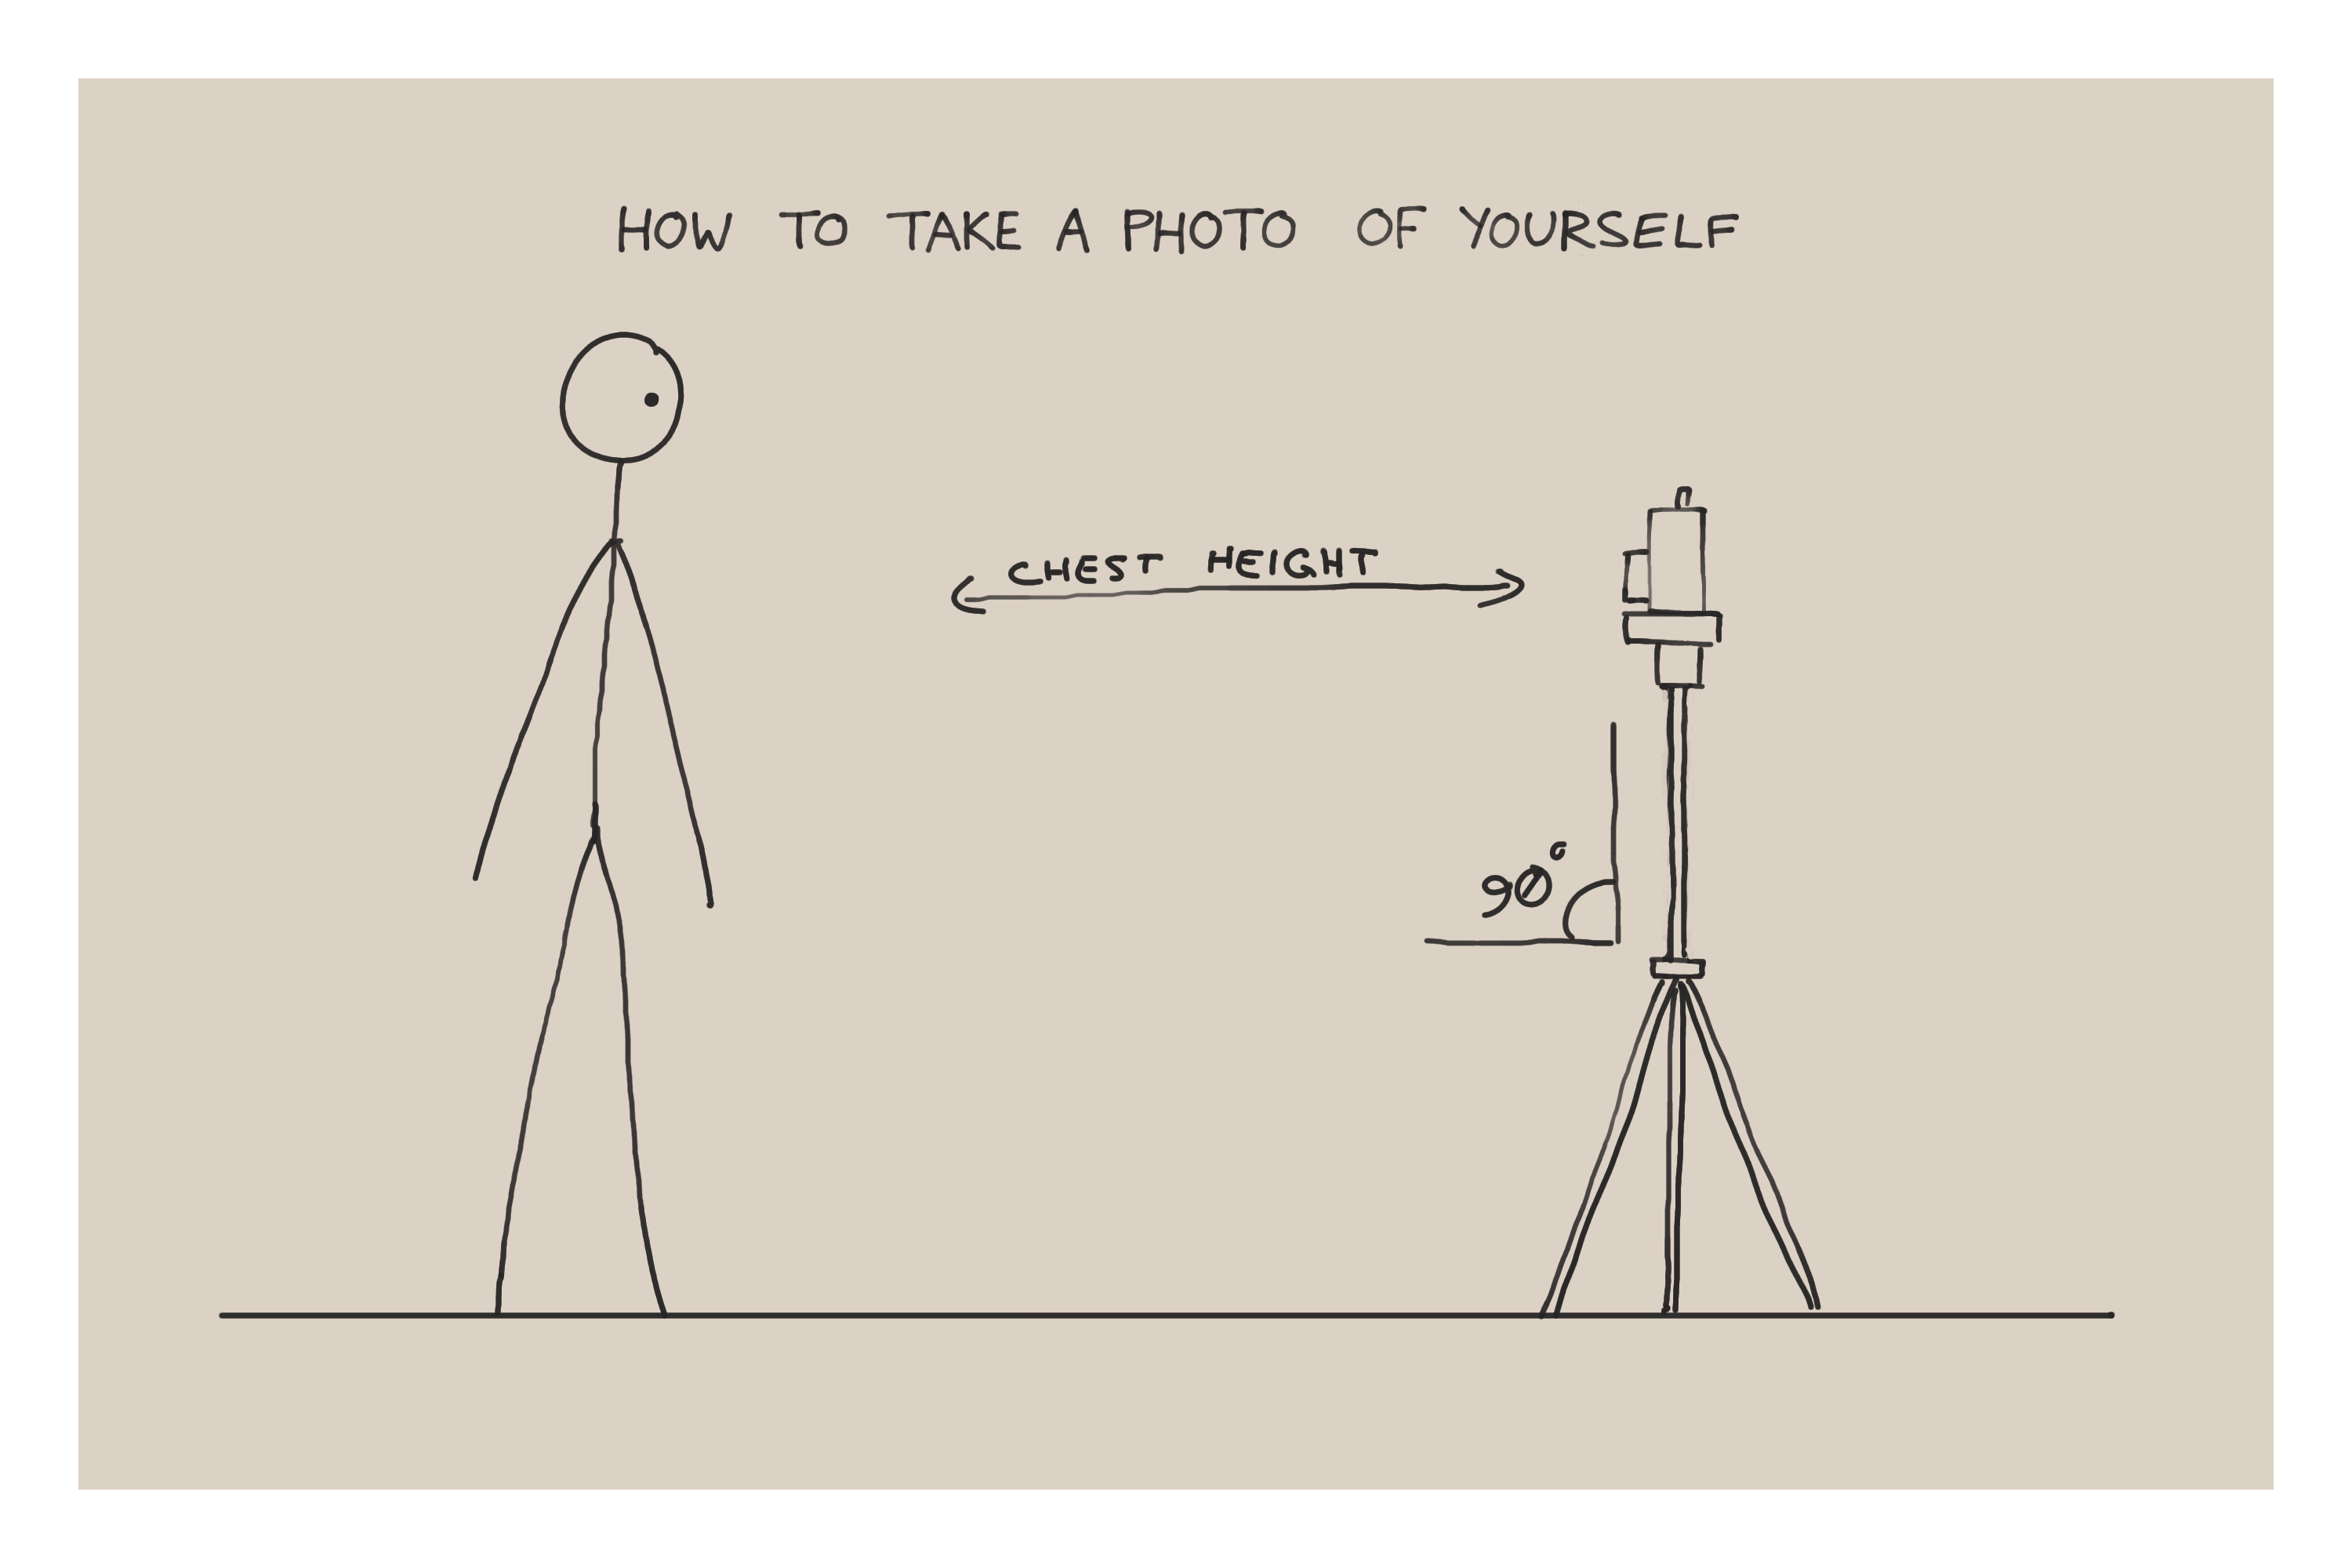 Make sure the camera is at chest height and a few feet away, so that you get an accurate picture of your proportions.